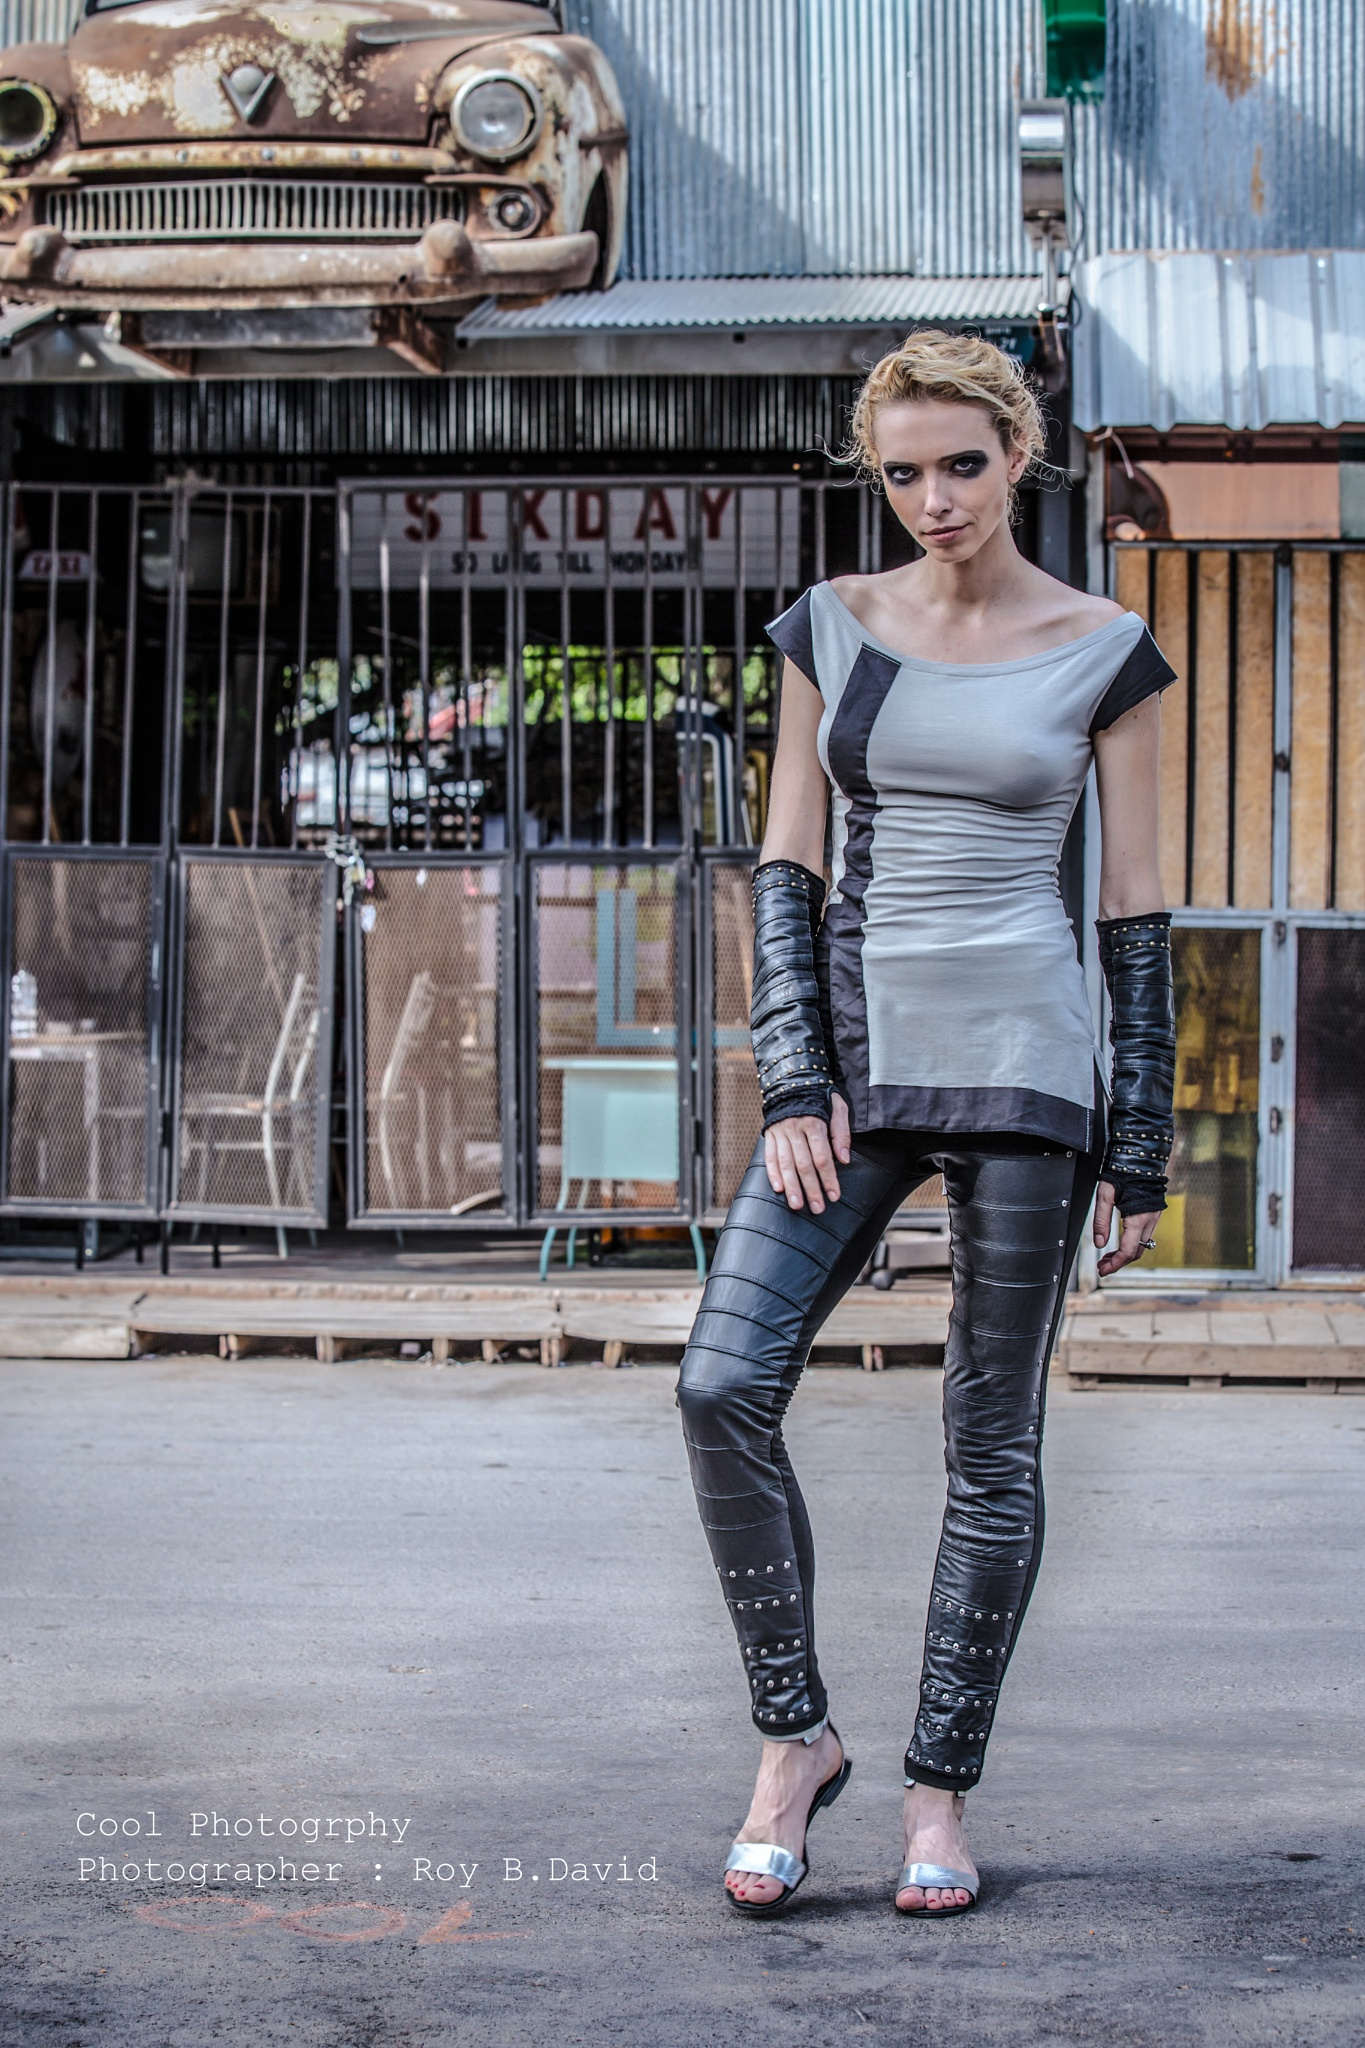 fashion shoot by COOLPHOTOGRAPHY